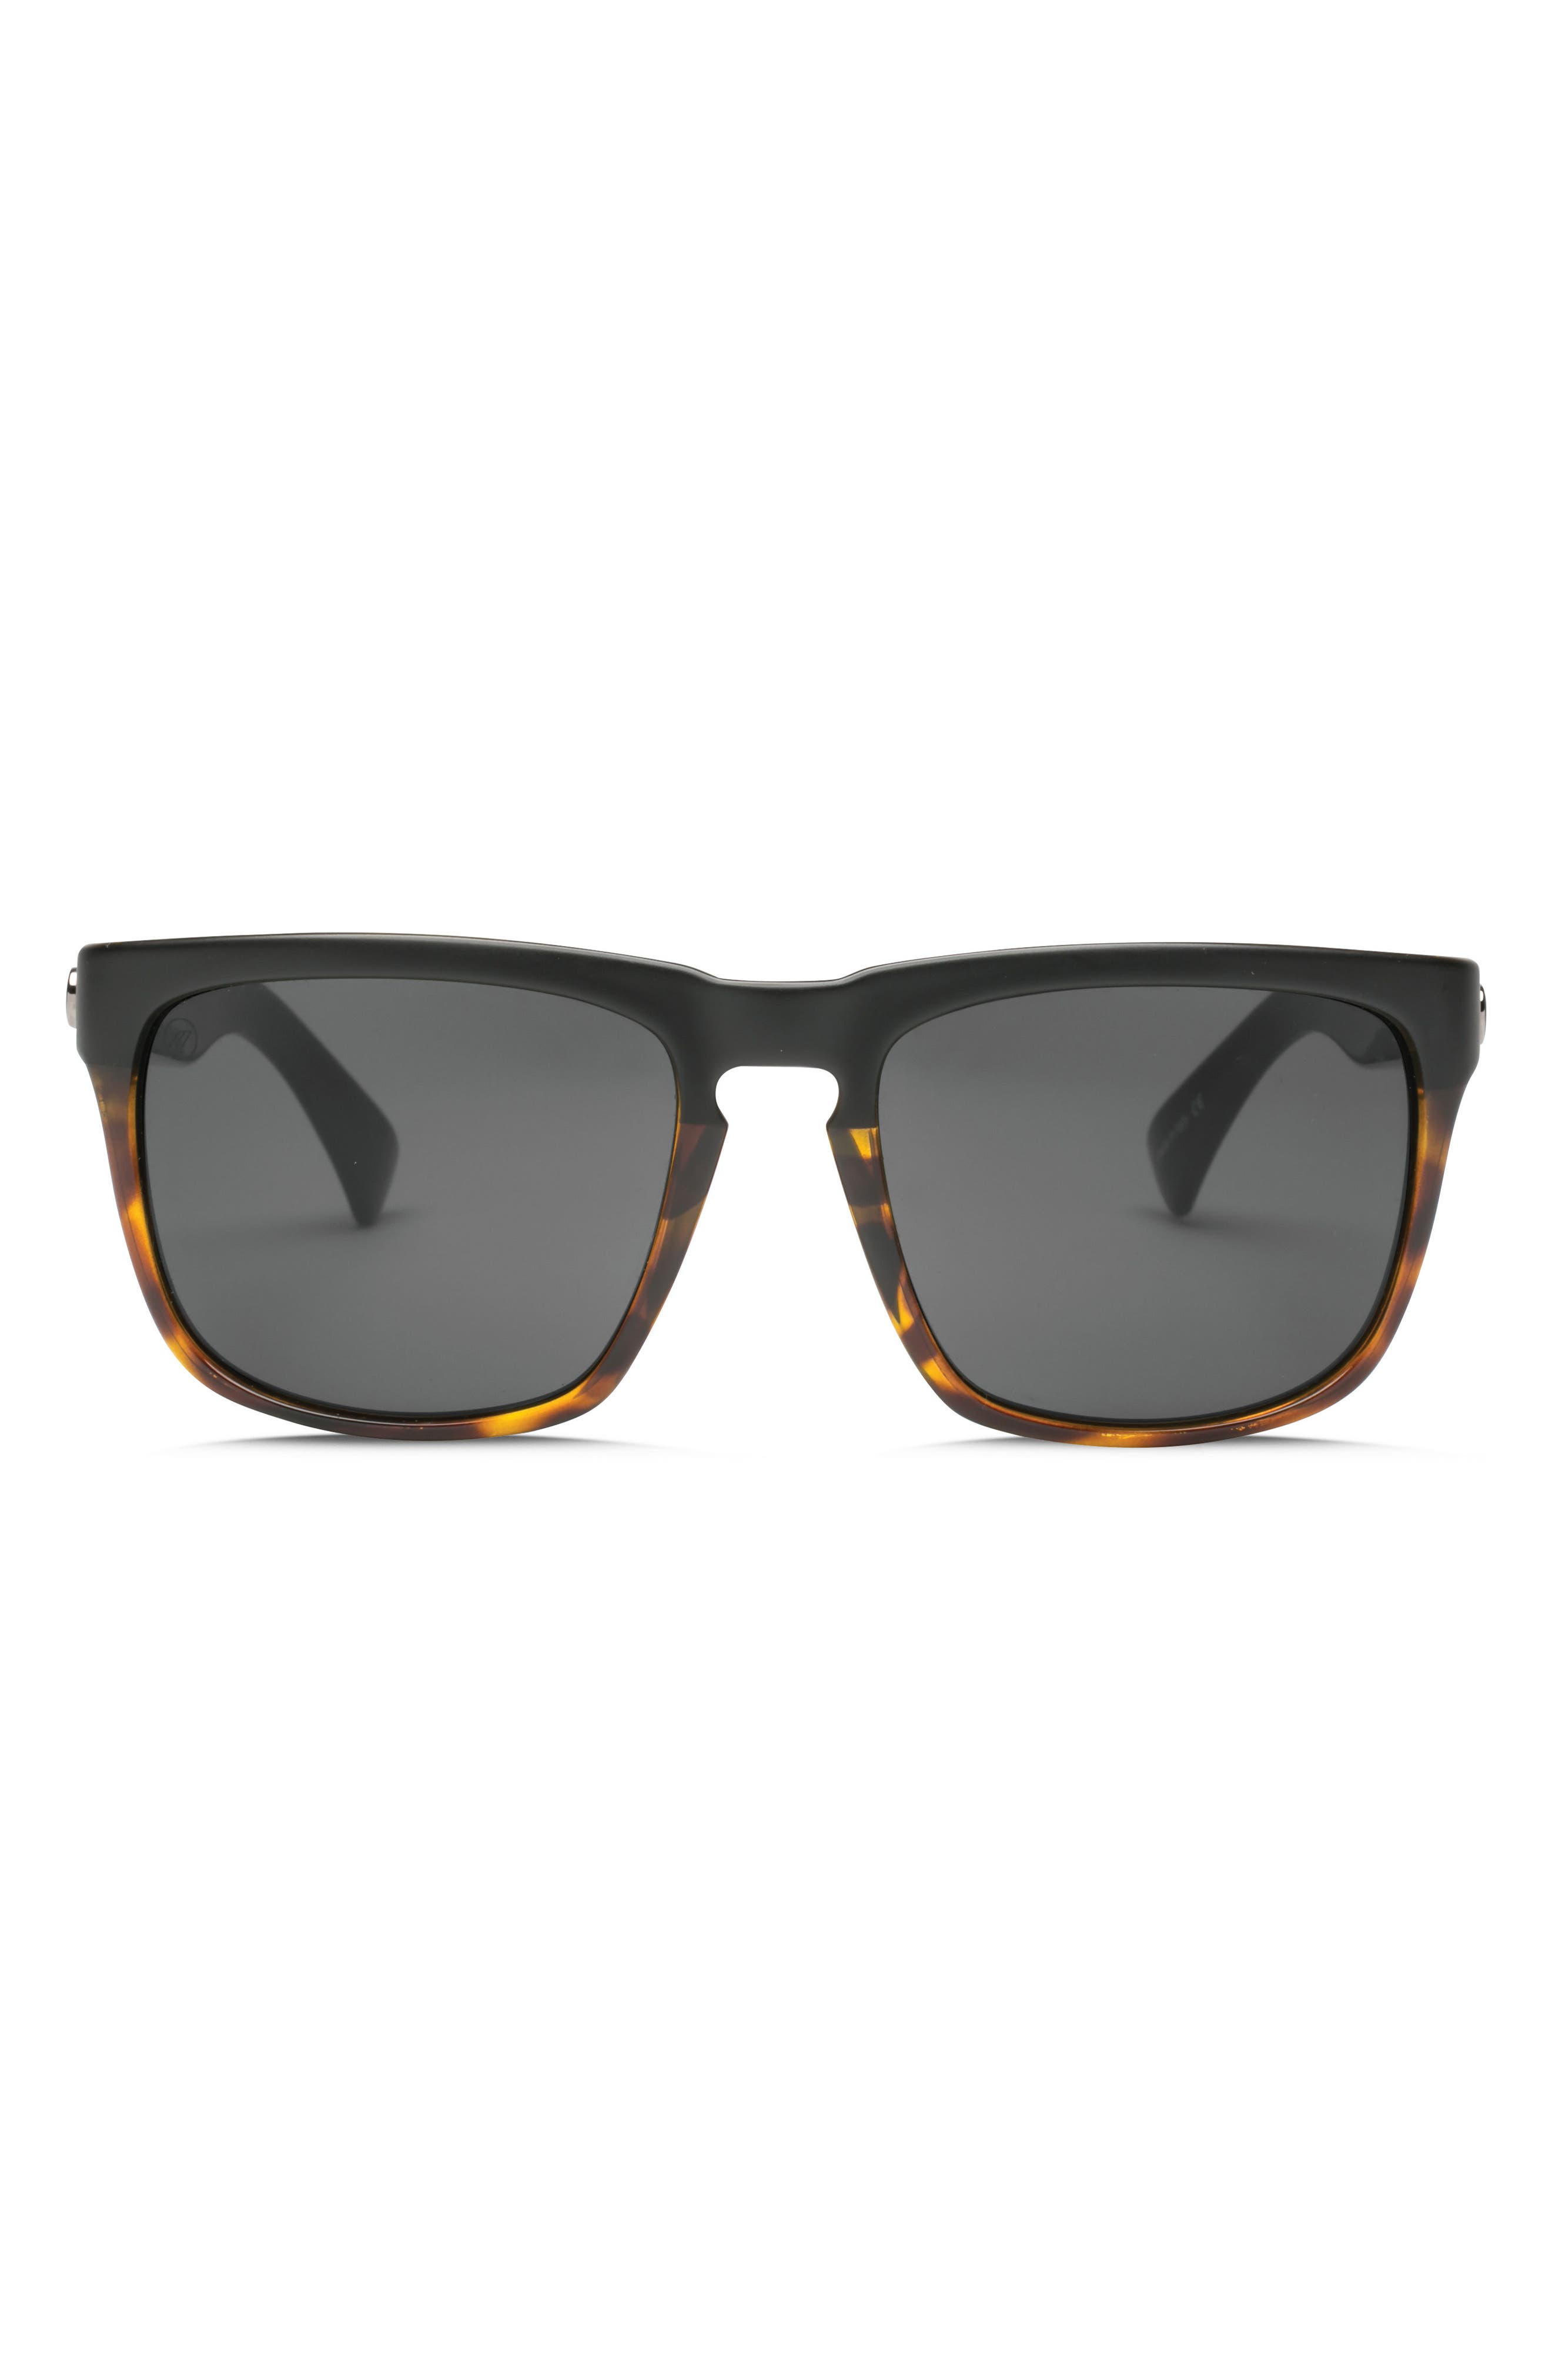 Knoxville XL 61mm Sunglasses,                         Main,                         color, Darkside Tortoise/ Grey